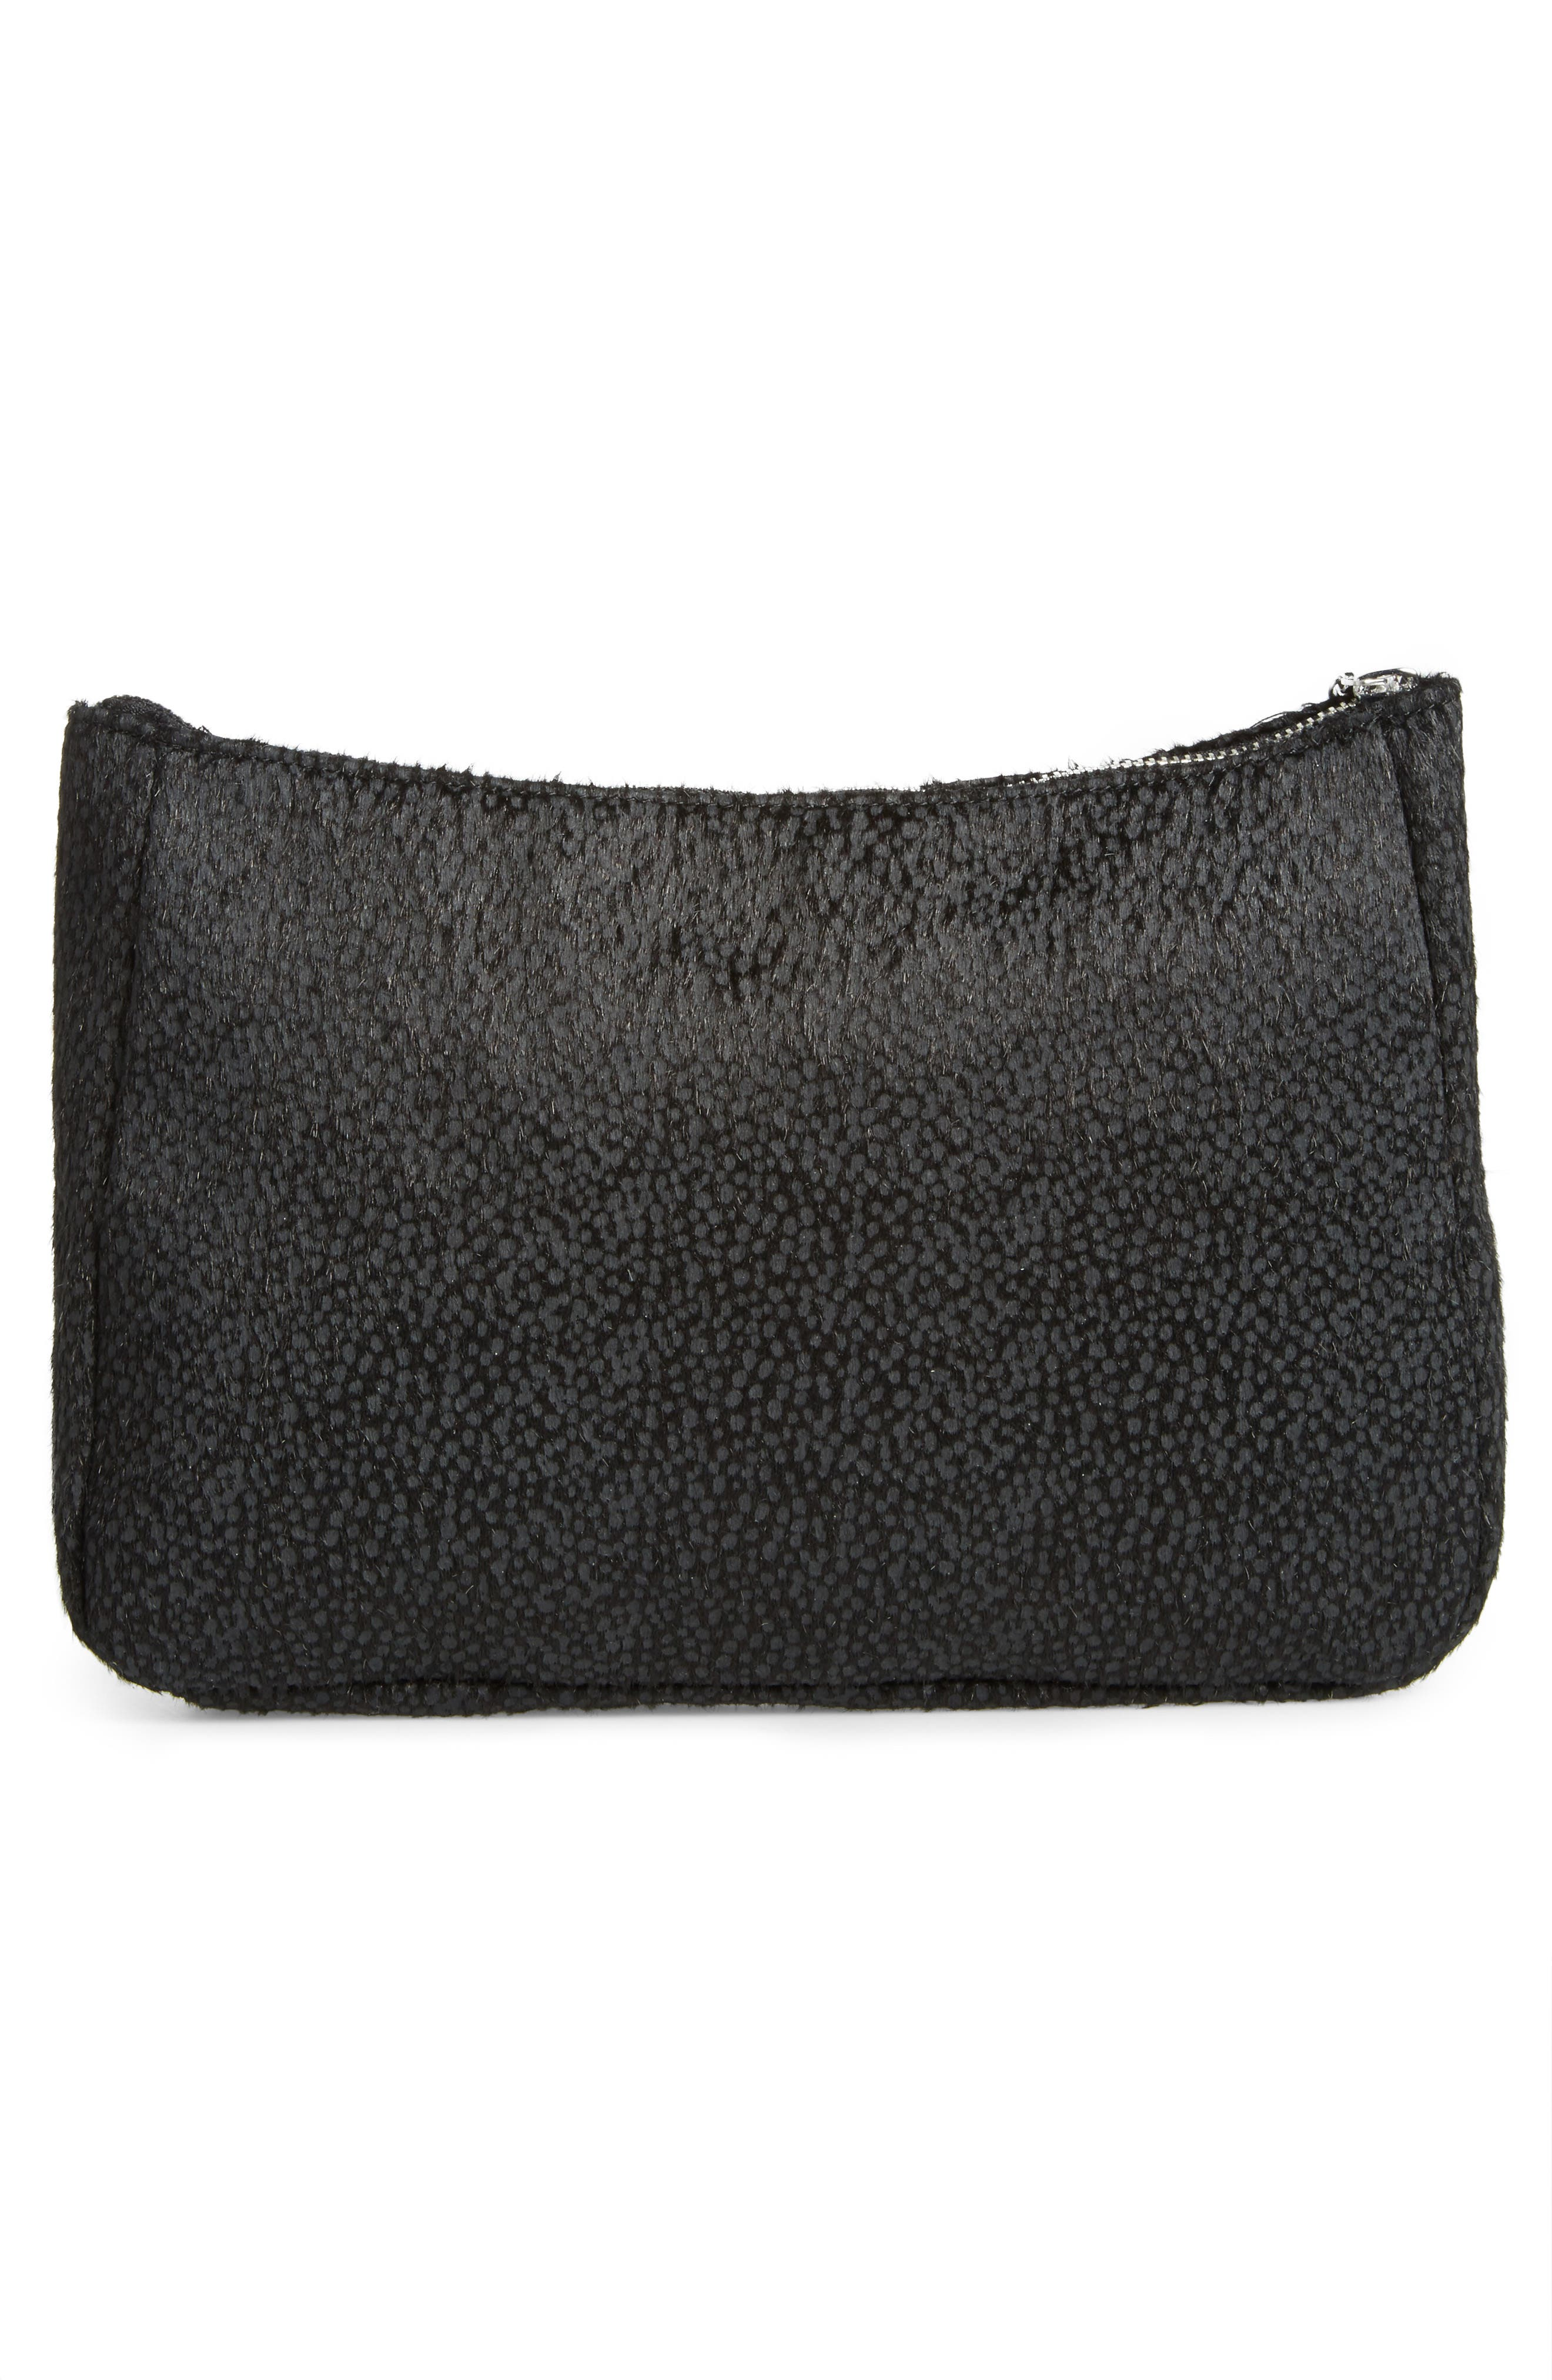 Faux Calf Hair Clutch,                             Alternate thumbnail 3, color,                             Black